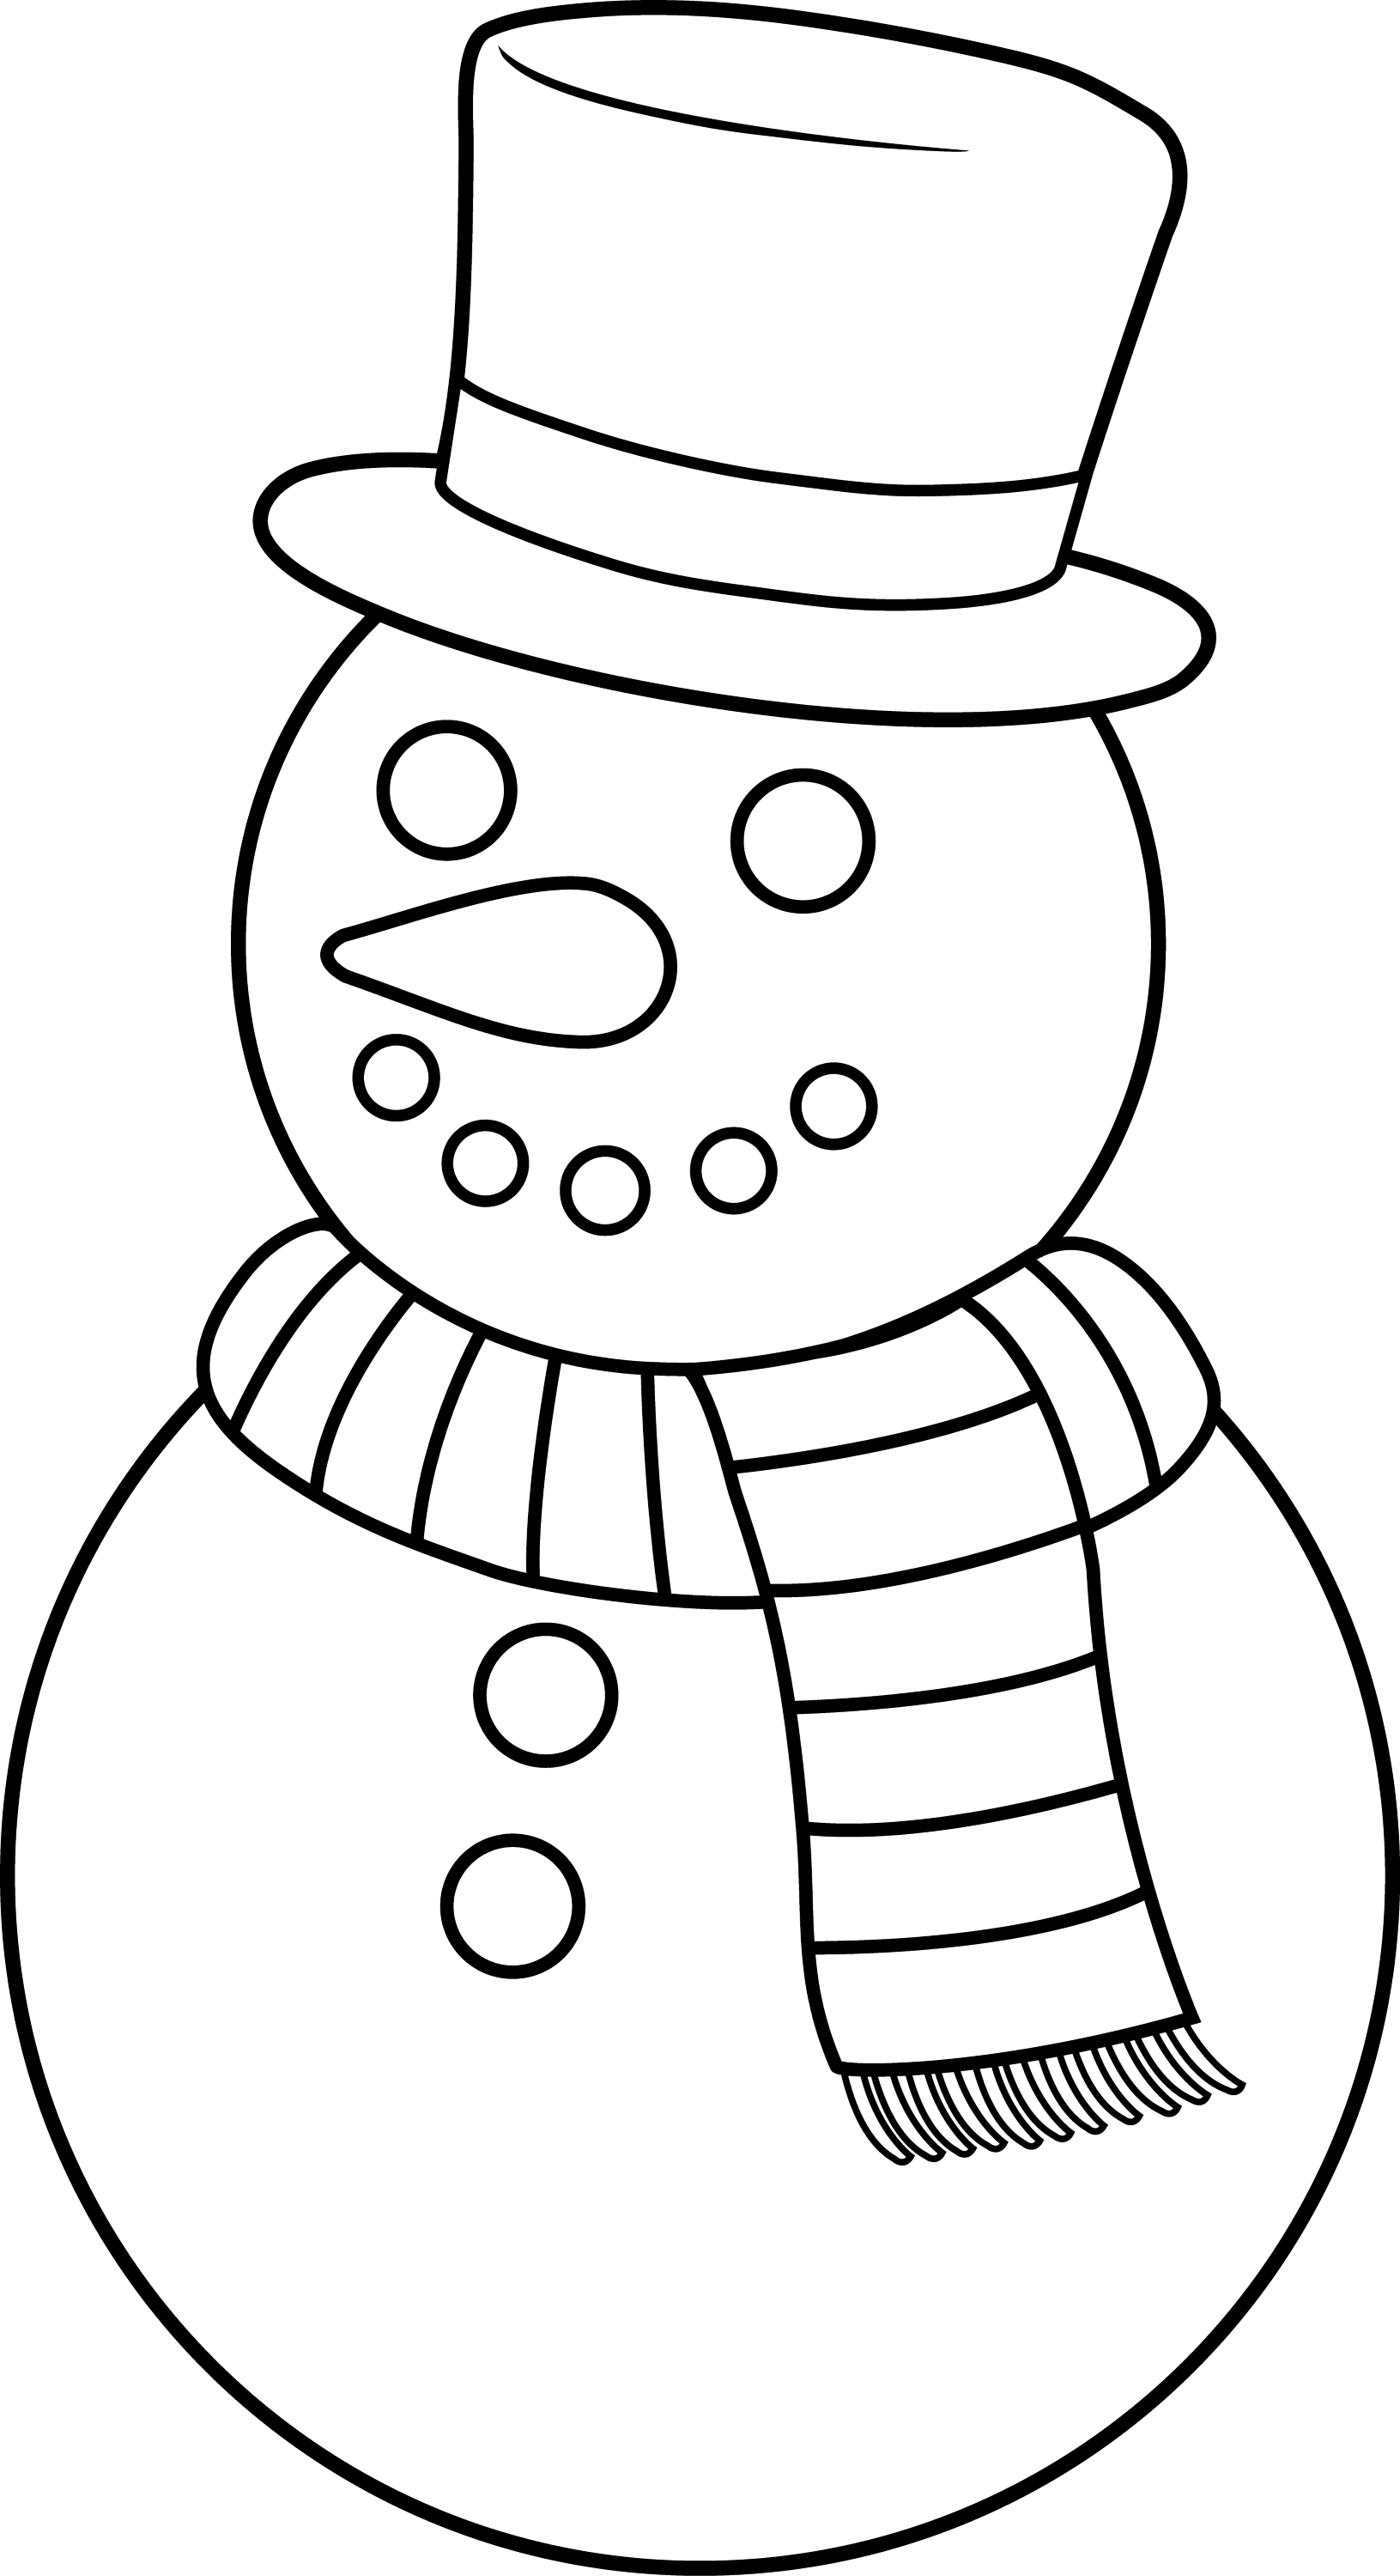 coloring christmas clipart black and white christmas stocking line art free clip art and white clipart christmas coloring black